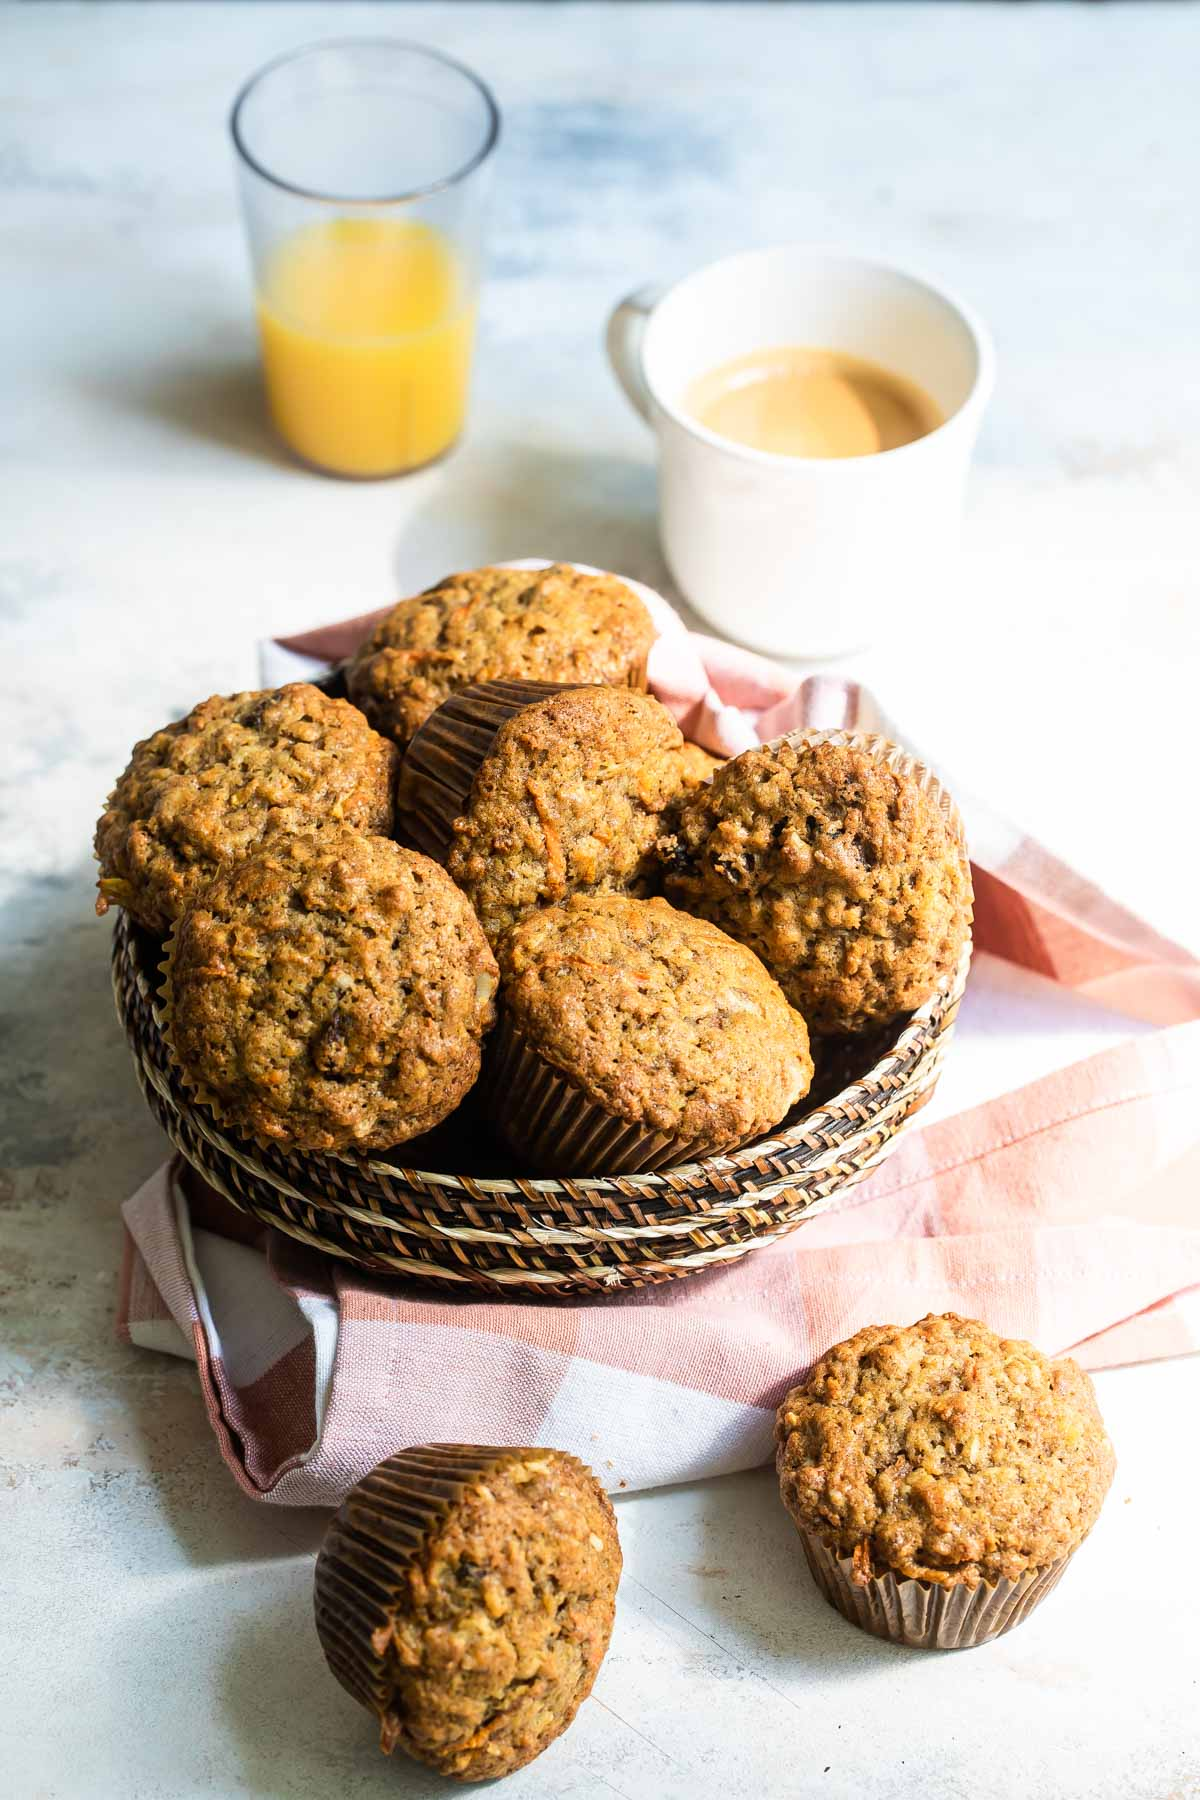 A basket filled with morning glory muffins.